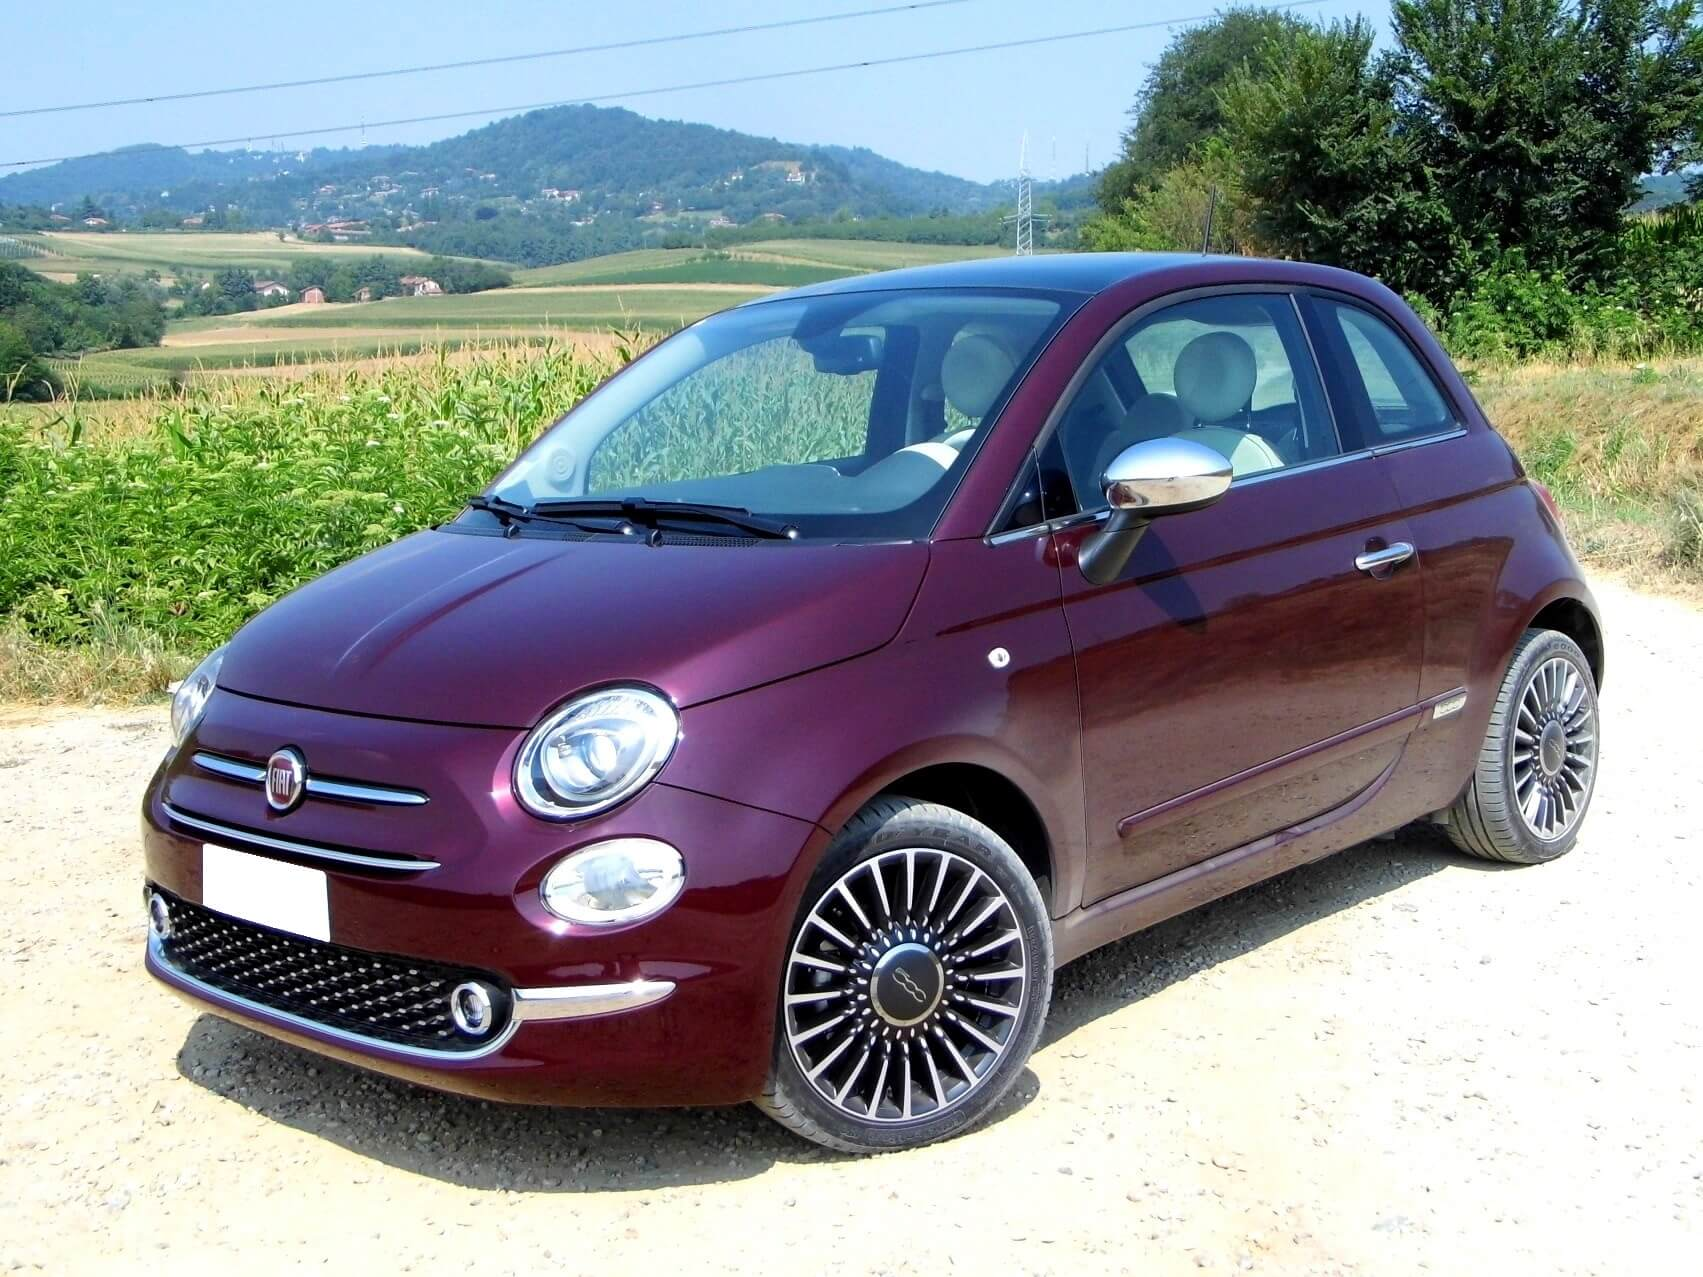 Fiat 500 Lounge: frontal.